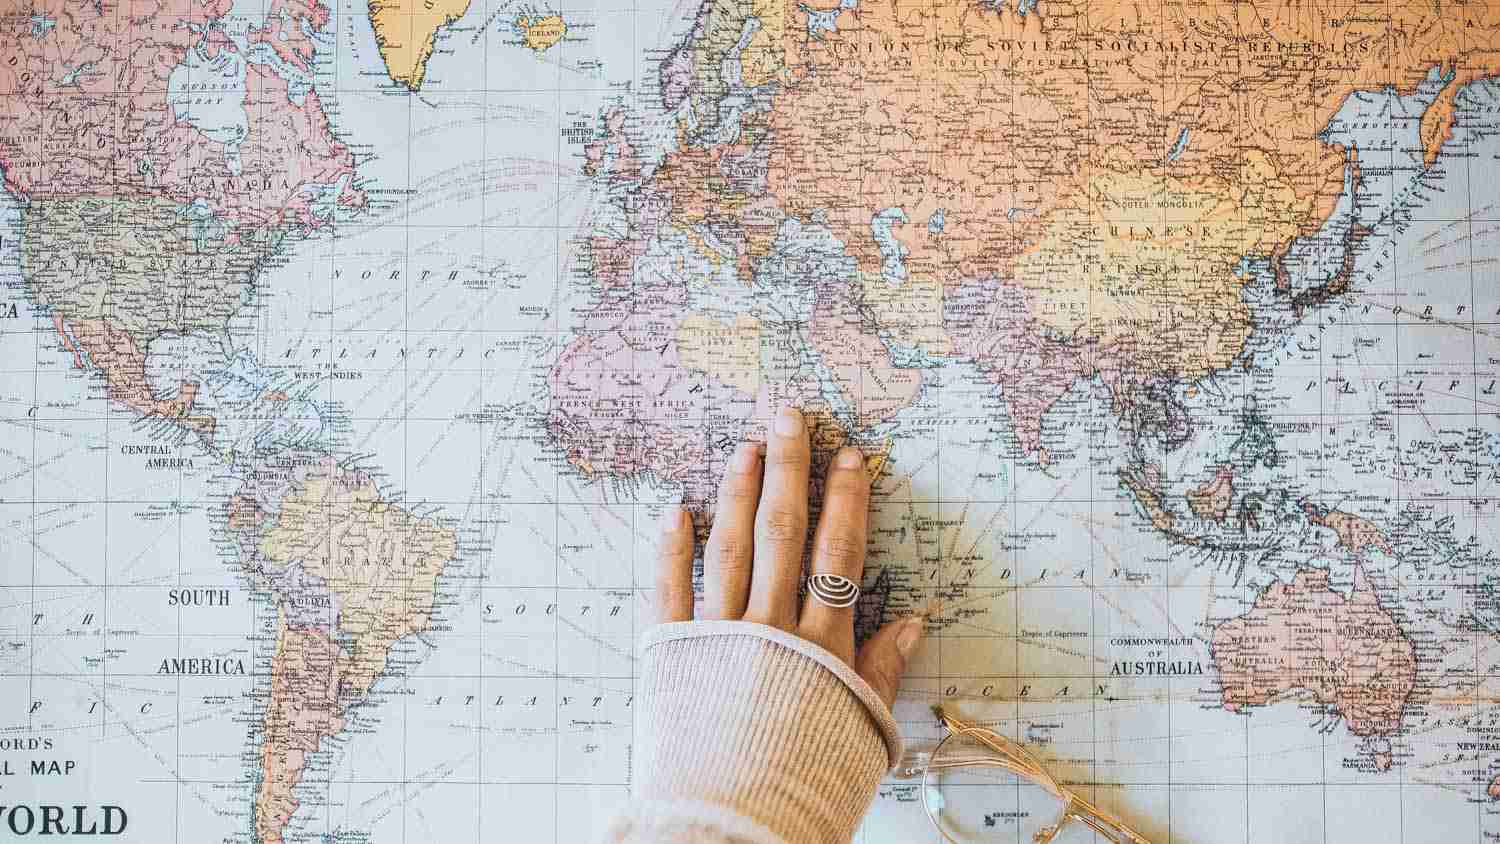 World map with hand placed on it